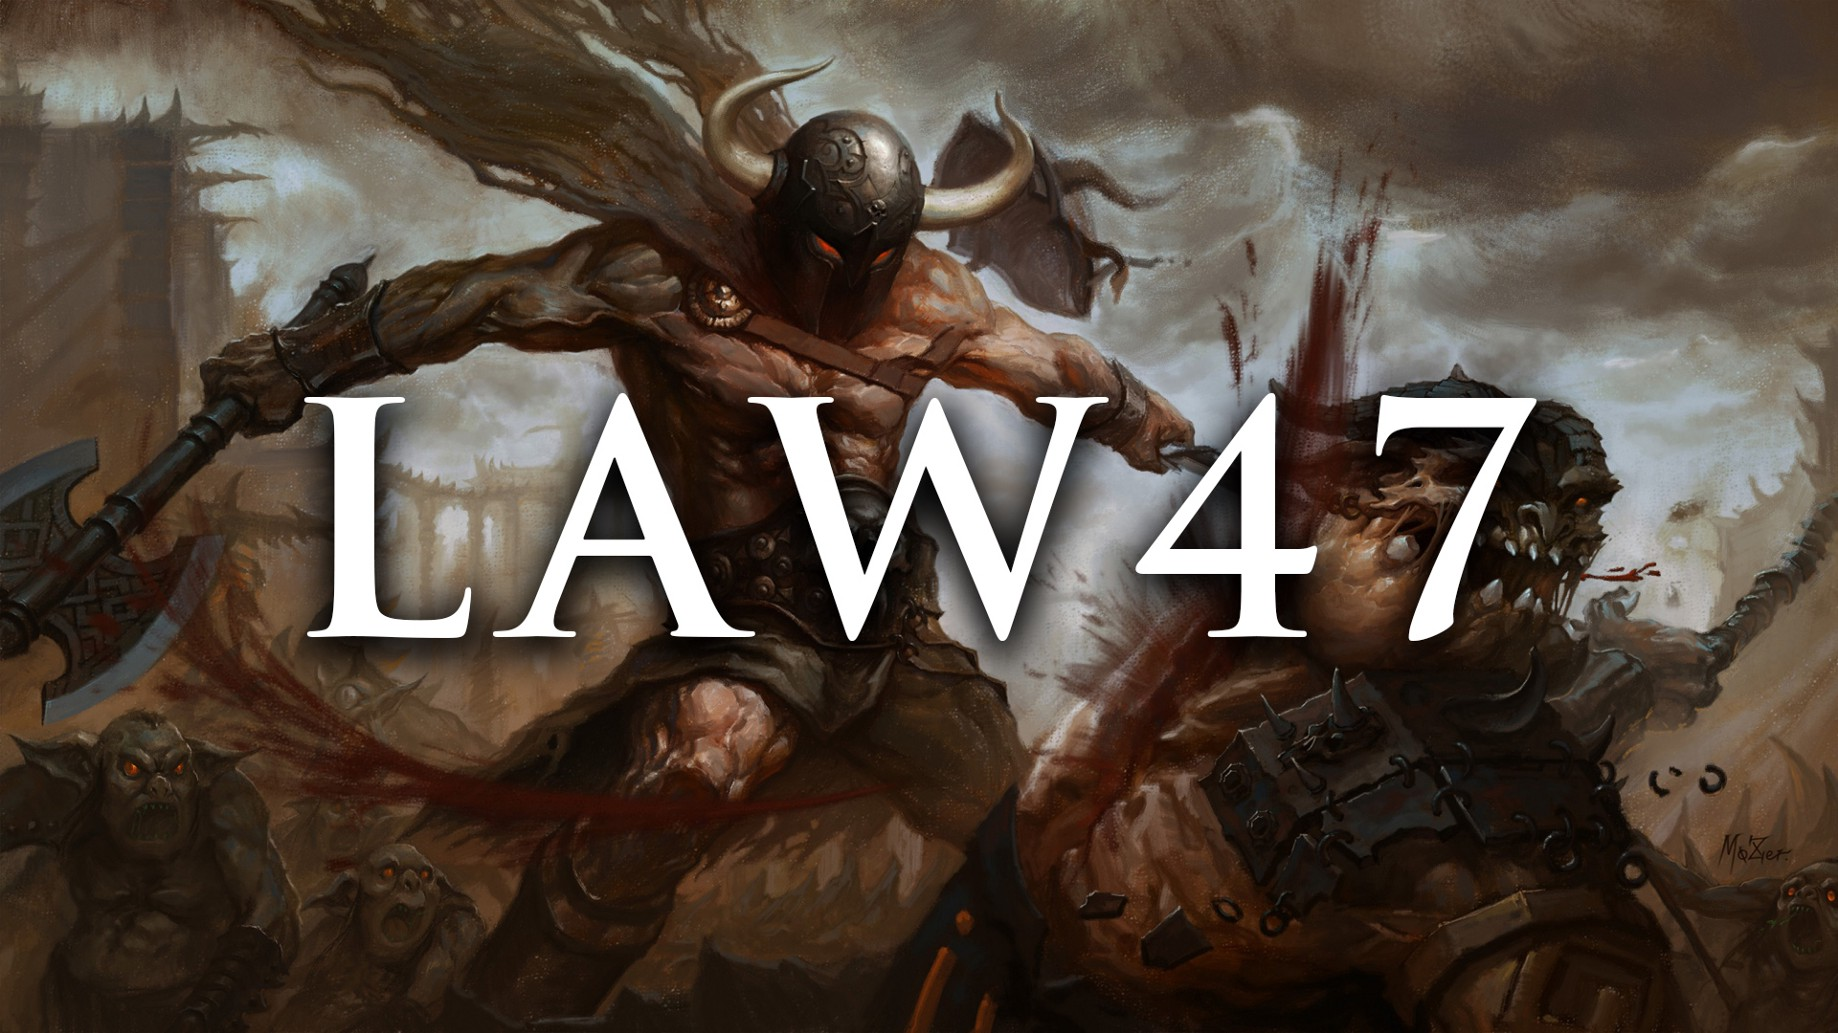 the 47 laws of power